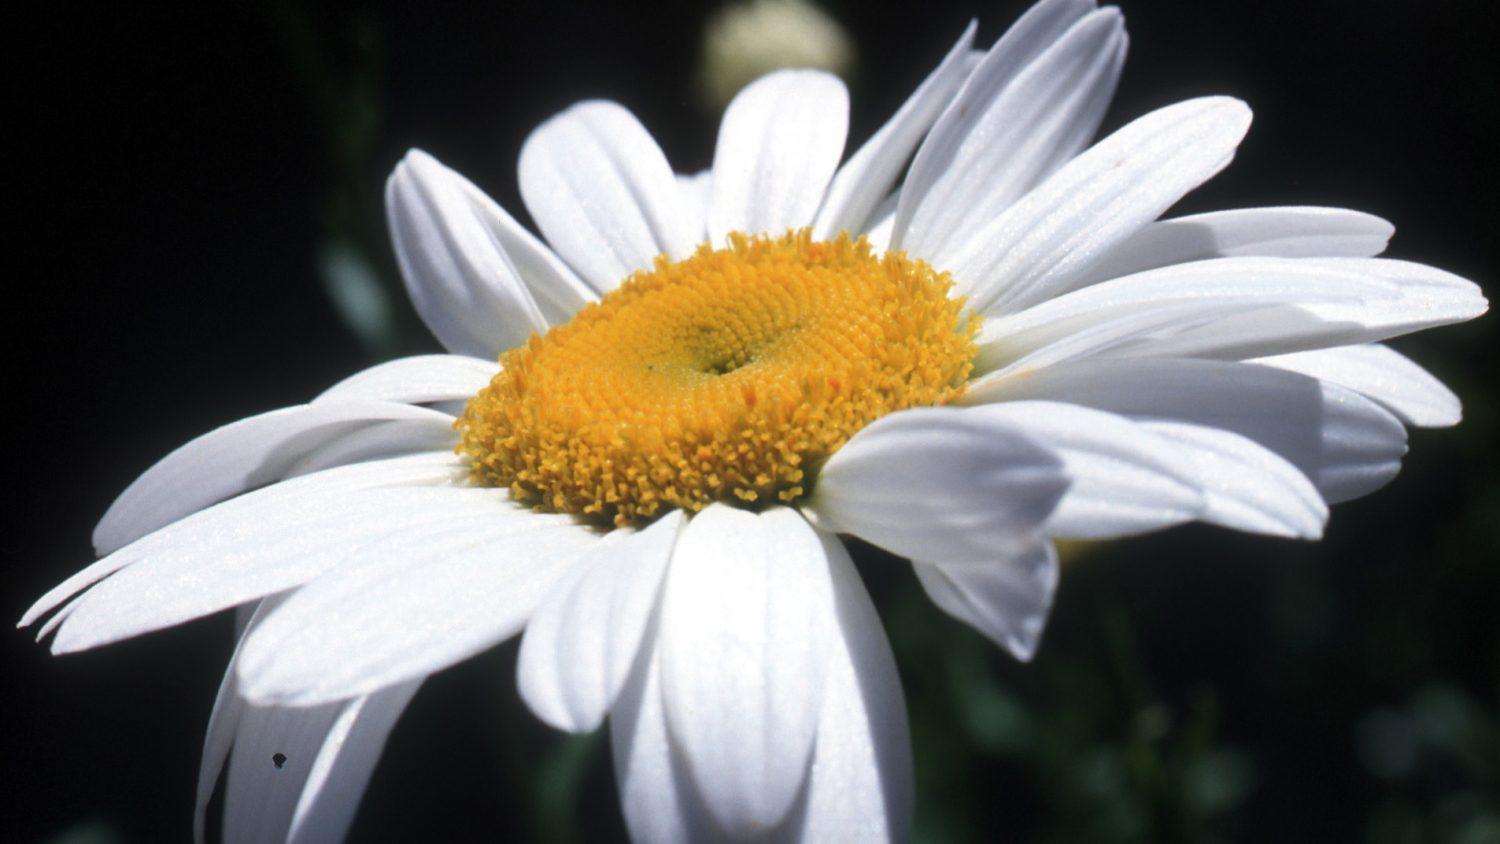 Close up photo of a daisy